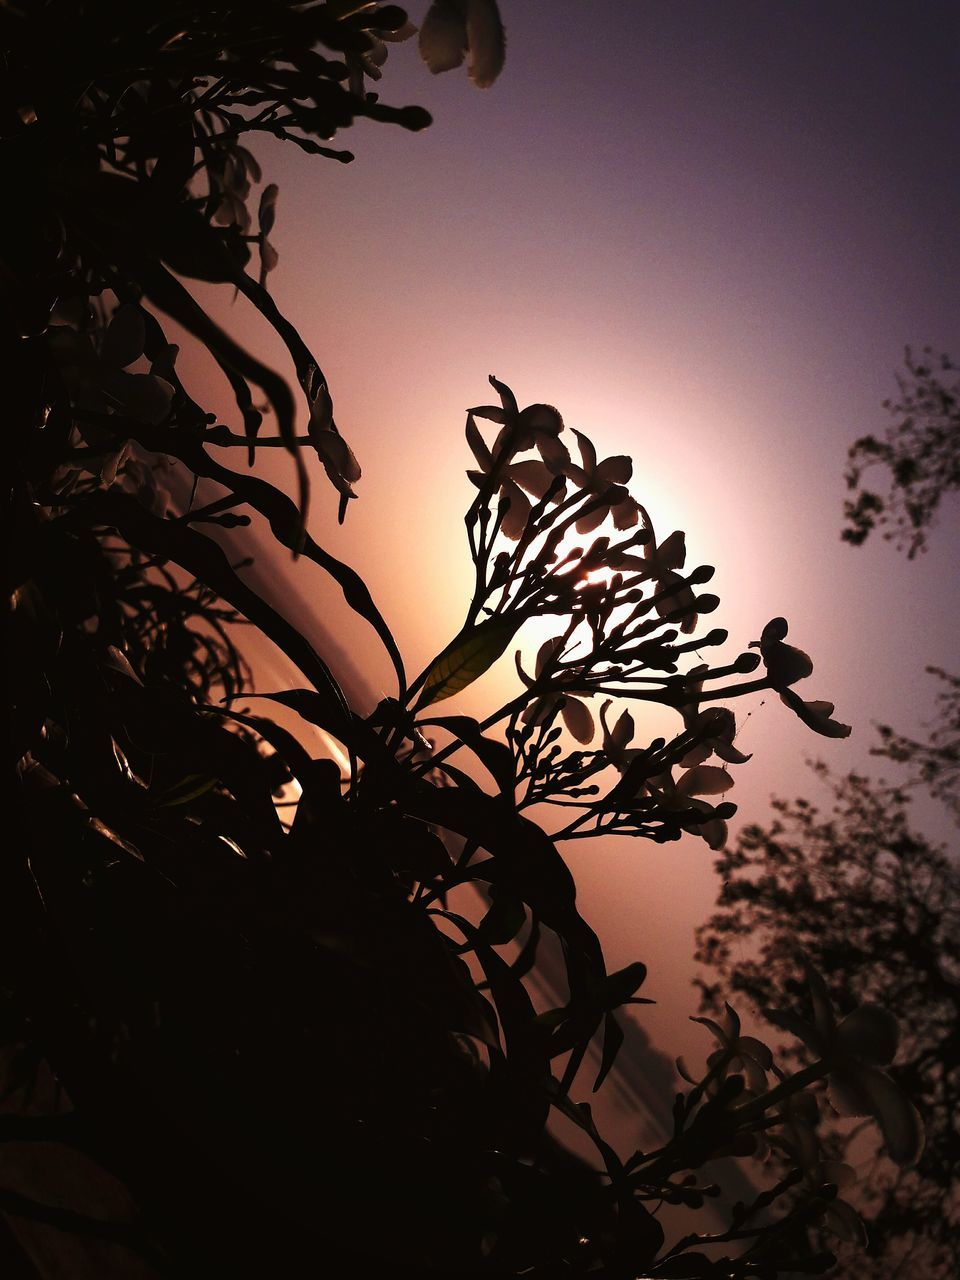 tree, silhouette, nature, low angle view, sunset, beauty in nature, sky, growth, plant, outdoors, no people, tranquility, clear sky, branch, leaf, scenics, flower, day, close-up